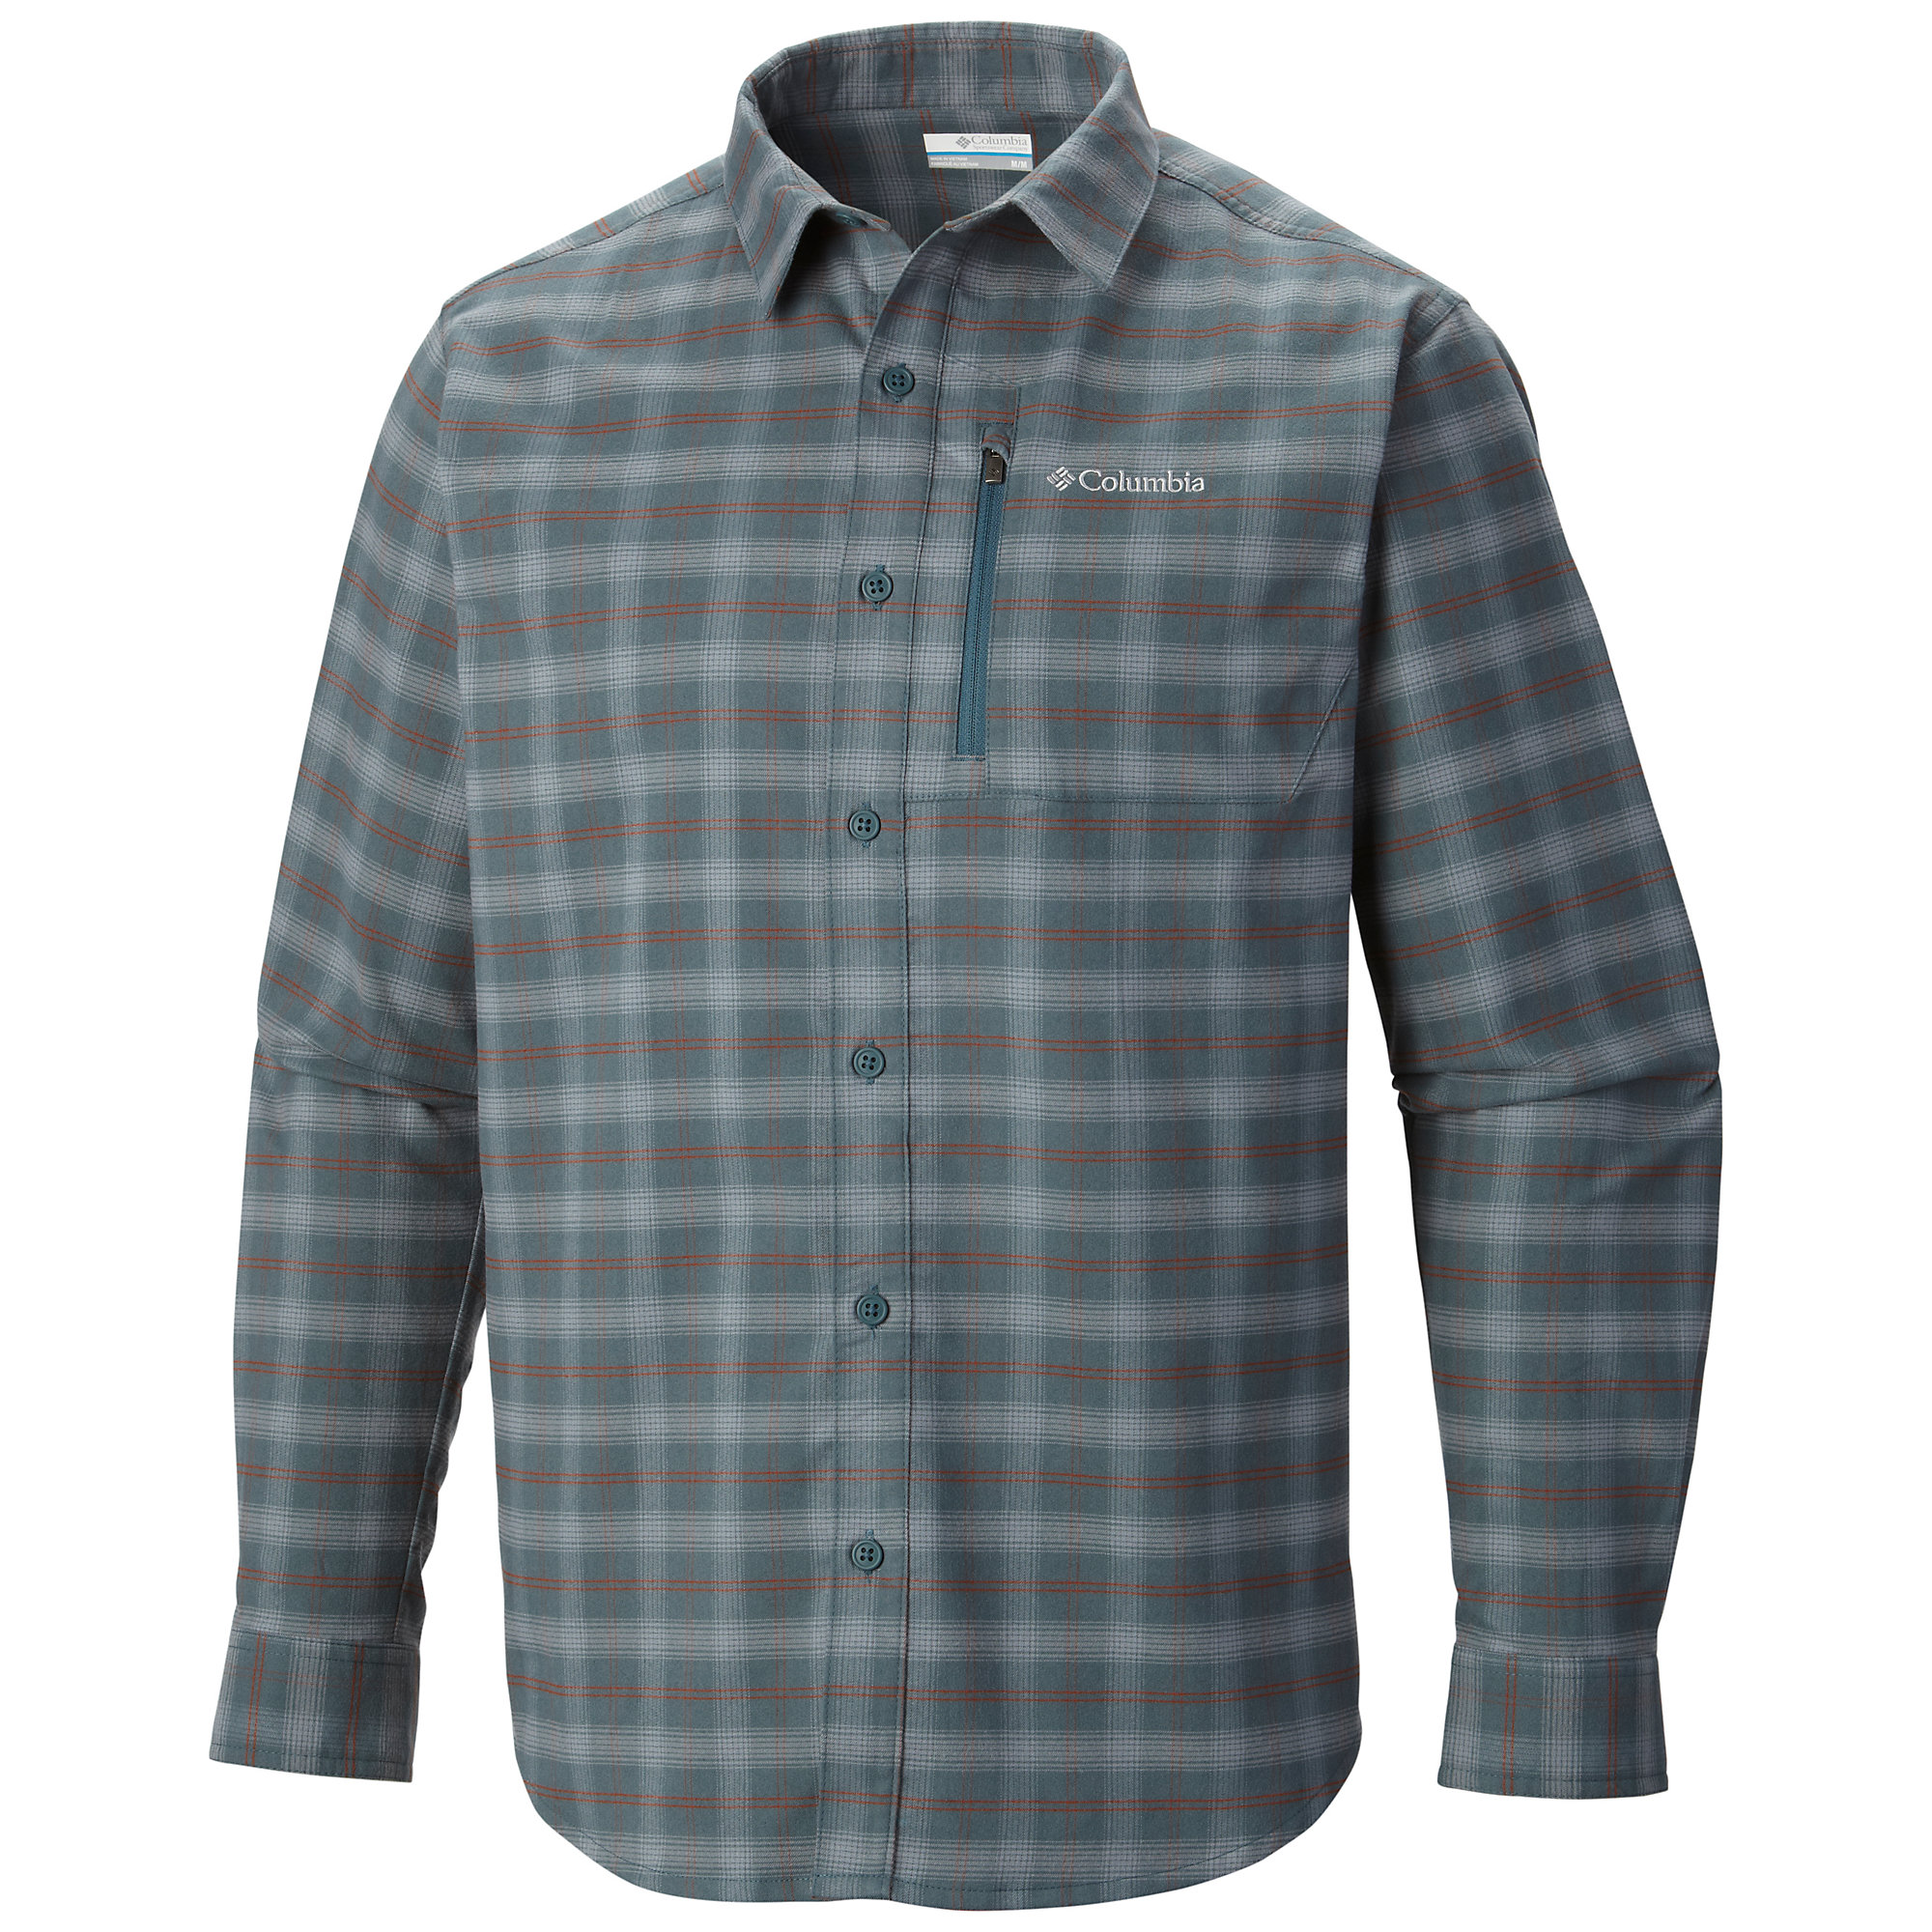 Columbia Royce Peak Flannel Long Sleeve Shirt